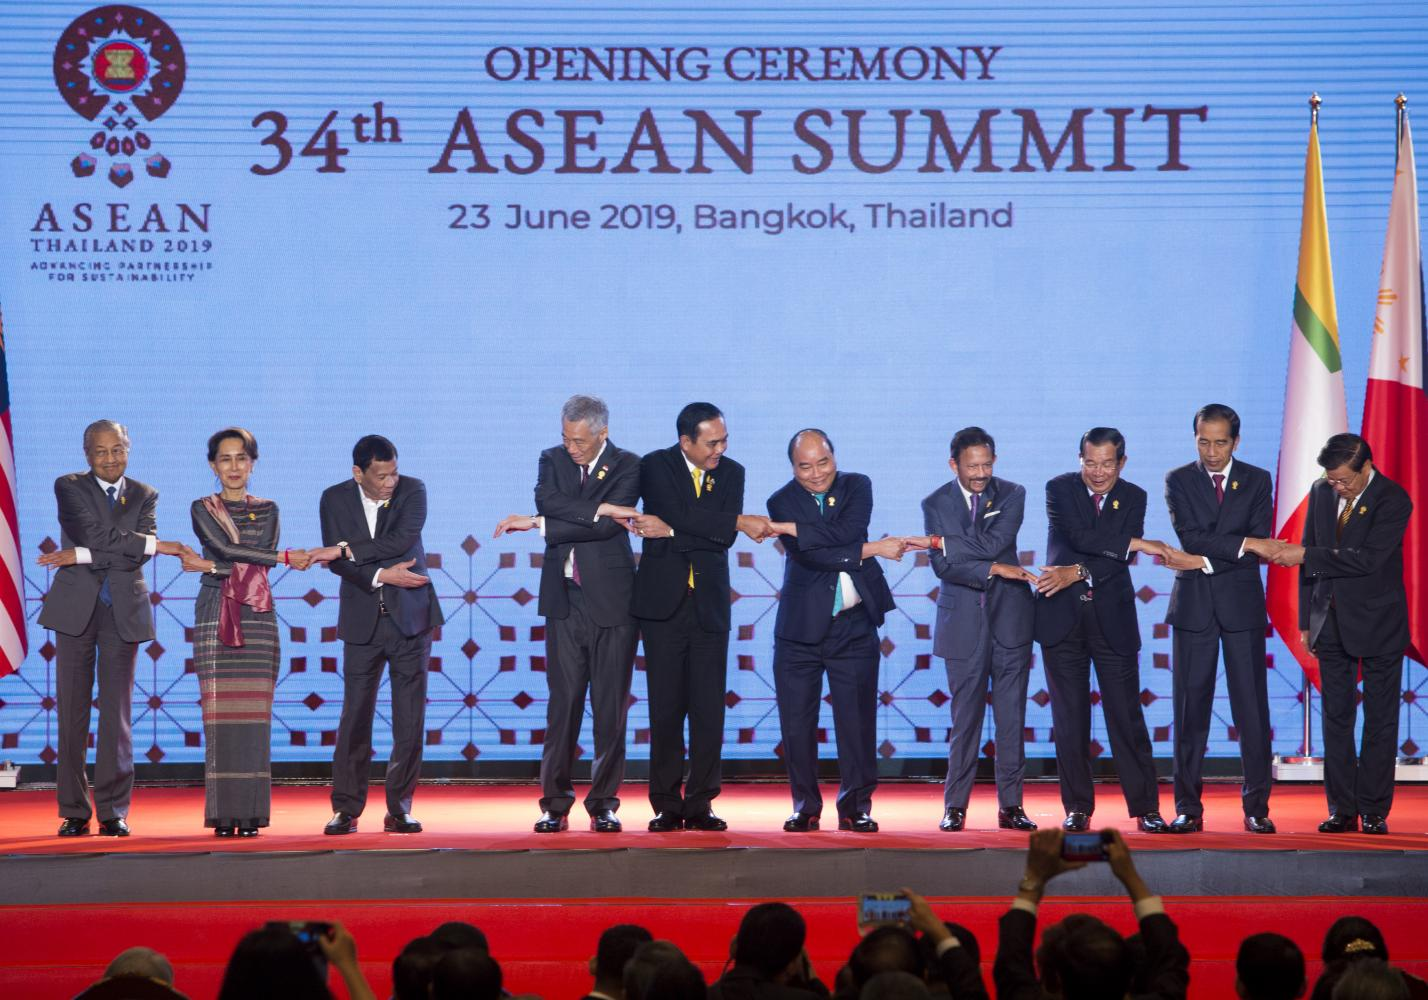 Asean leaders link hands on stage during the 34th Asean Summit in Bangkok on June 23 when they launched the 'Asean Outlook on the Indo-Pacific' (AOIP). PATTARAPONG CHATPATTARASILL